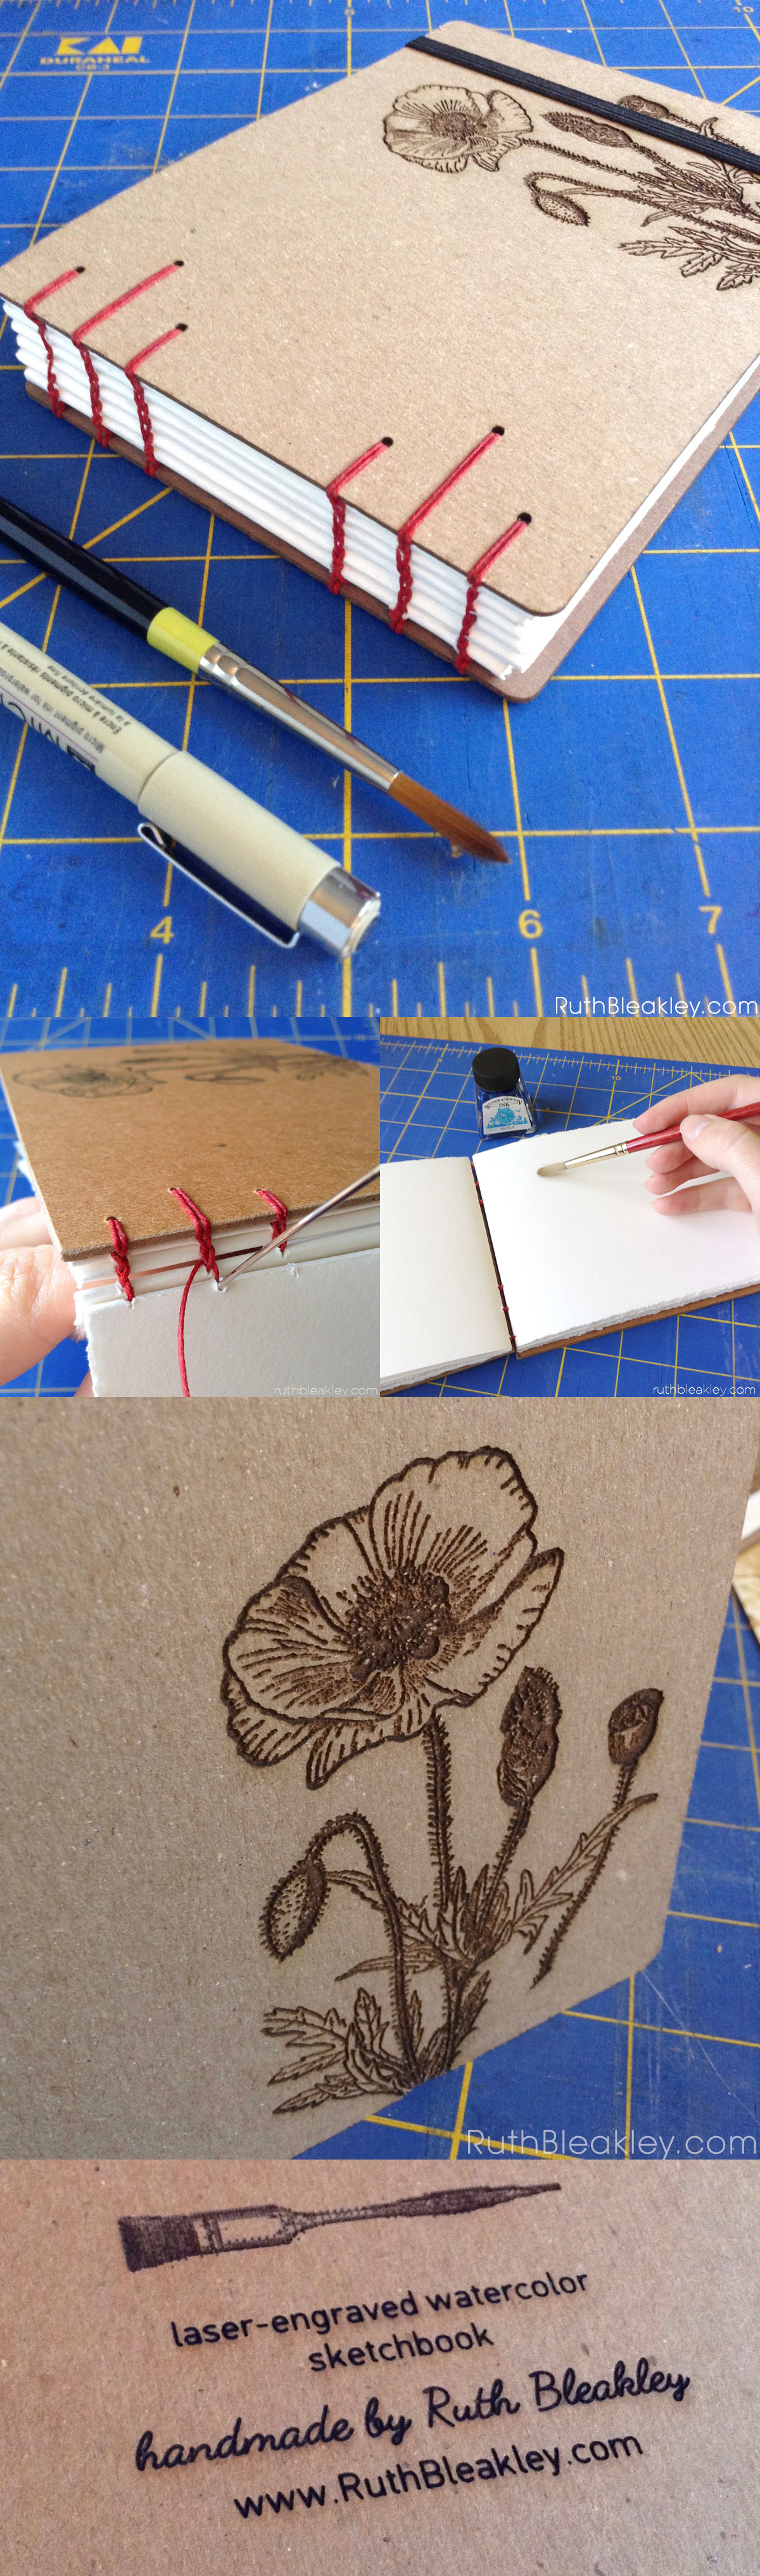 handmade sketchbook with red poppy covers and laser engraved covers made by bookbinder Ruth Bleakley